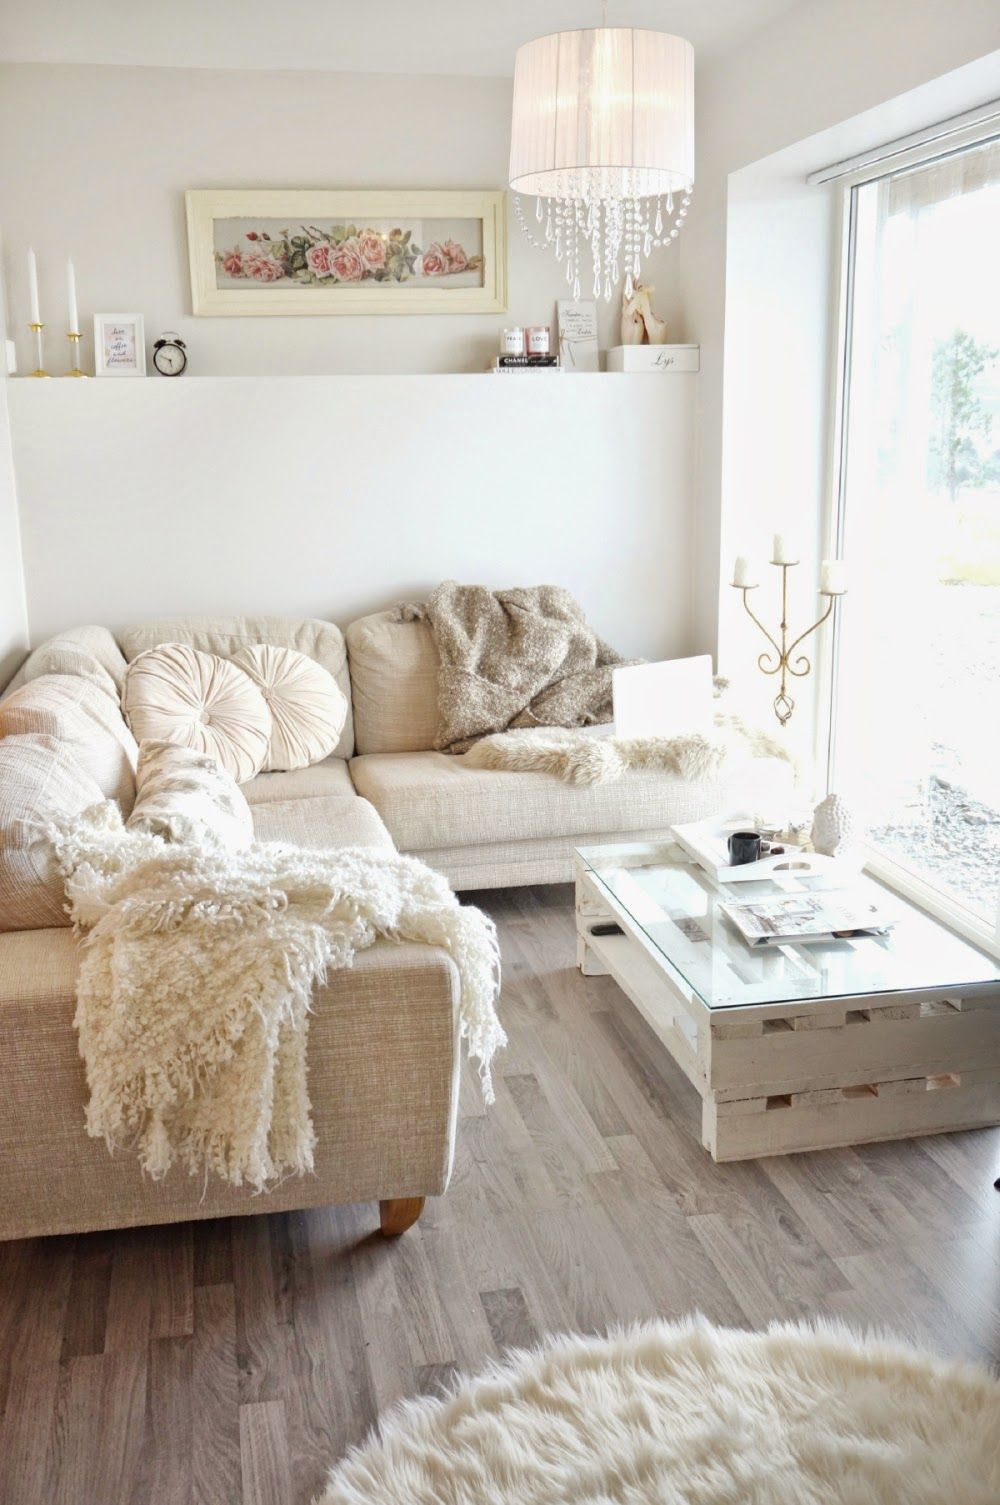 14 ways to make a small living room bigger | lucite furniture